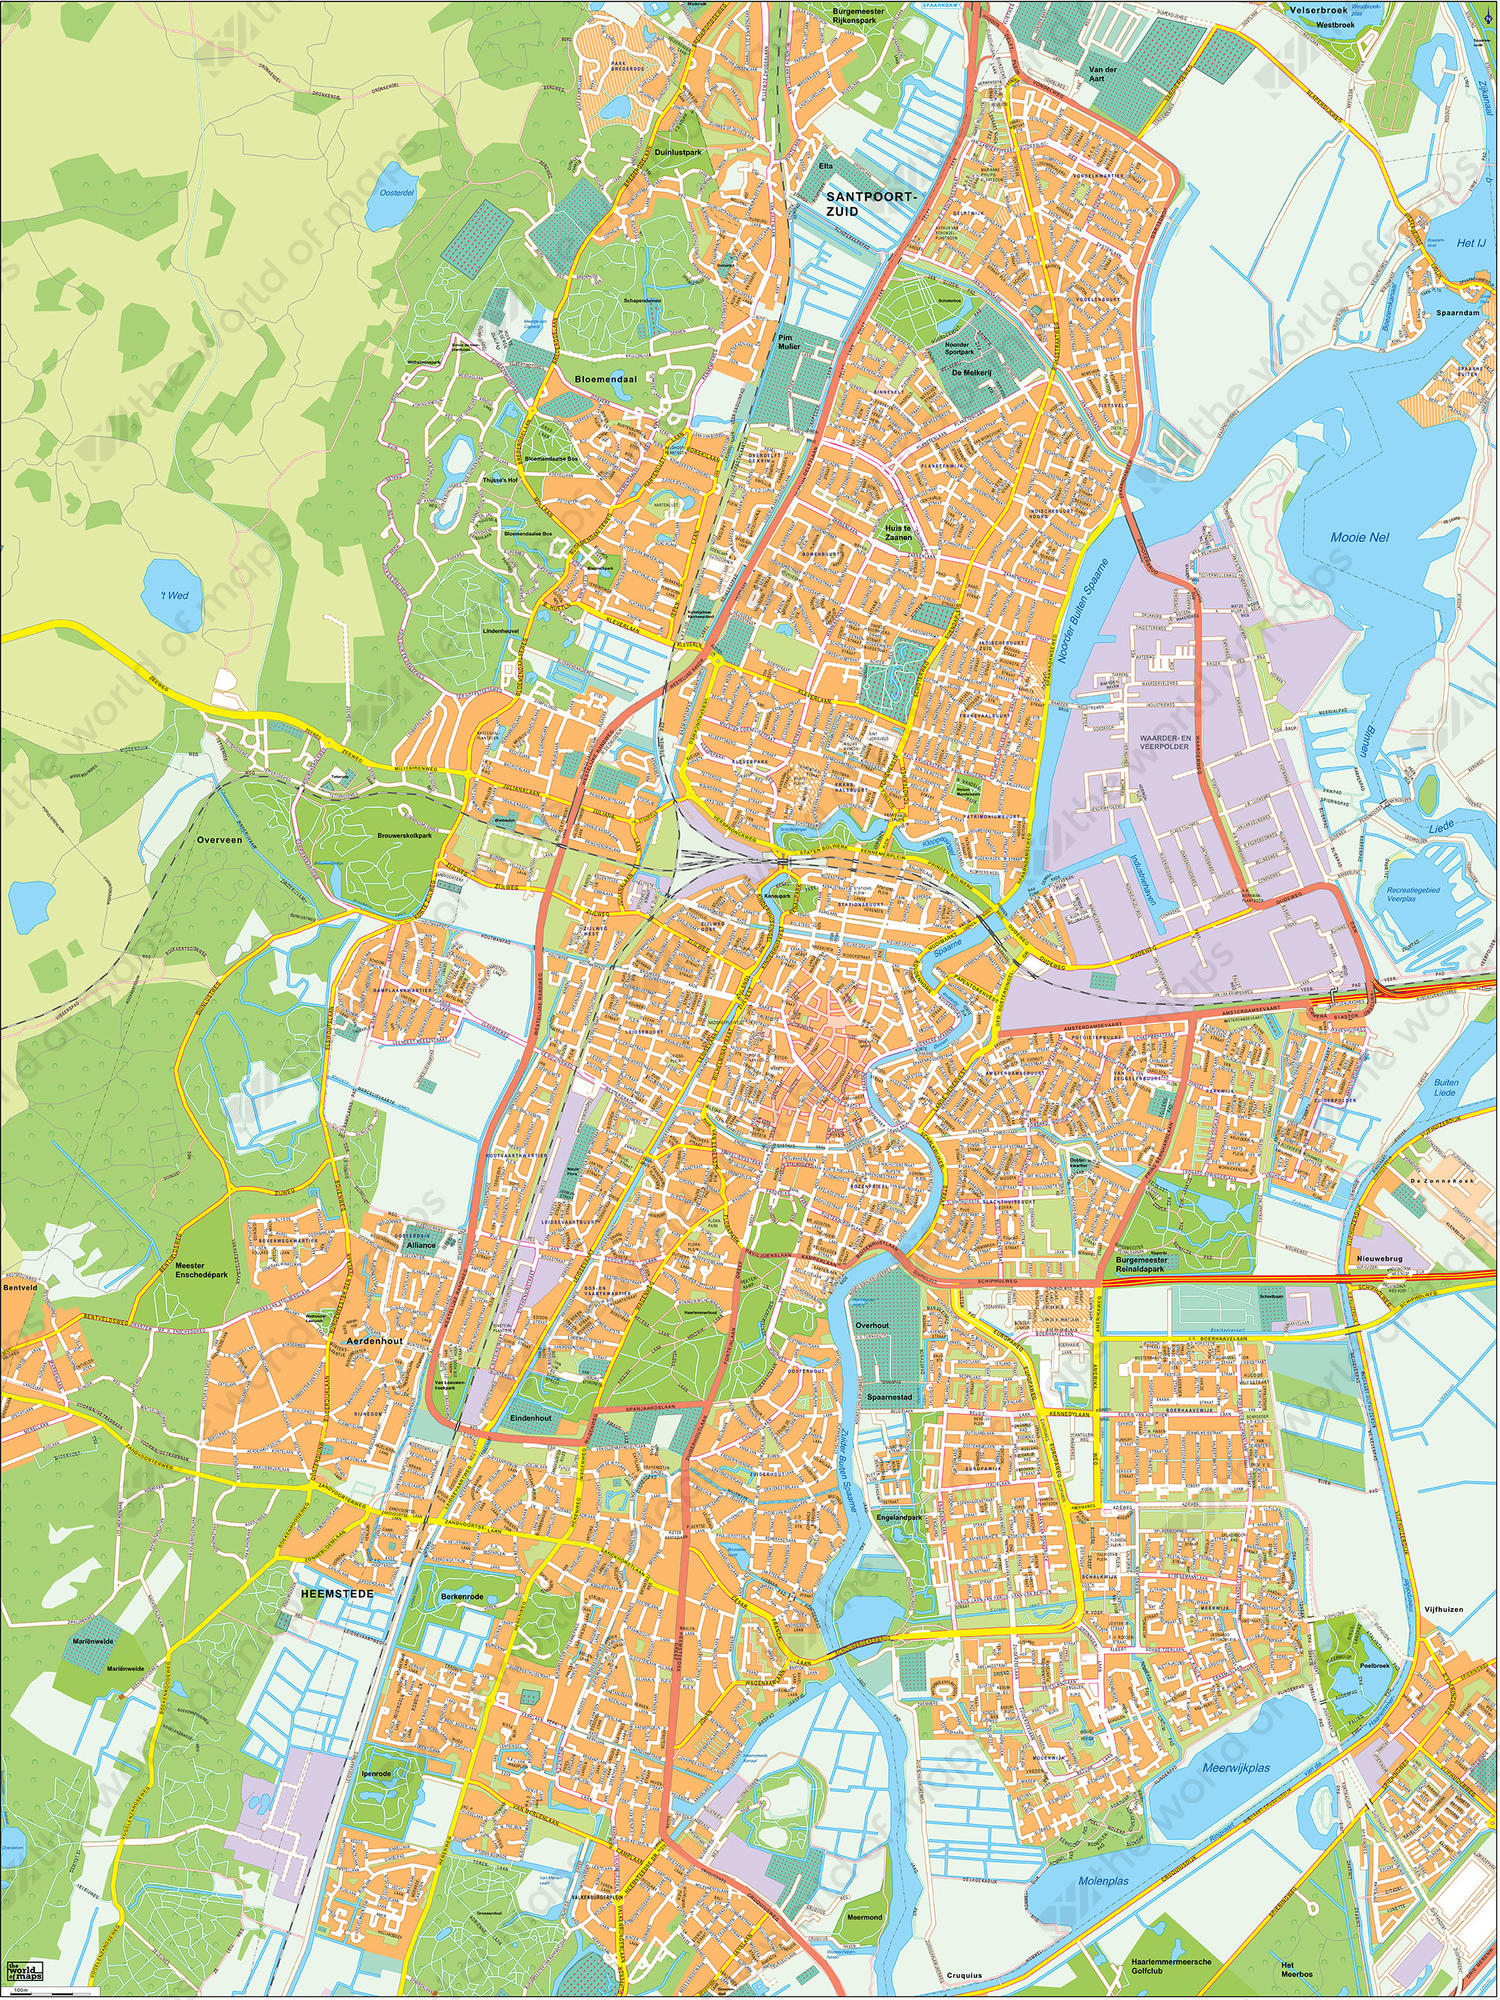 Digital City Map Haarlem 398 | The World of Maps.com